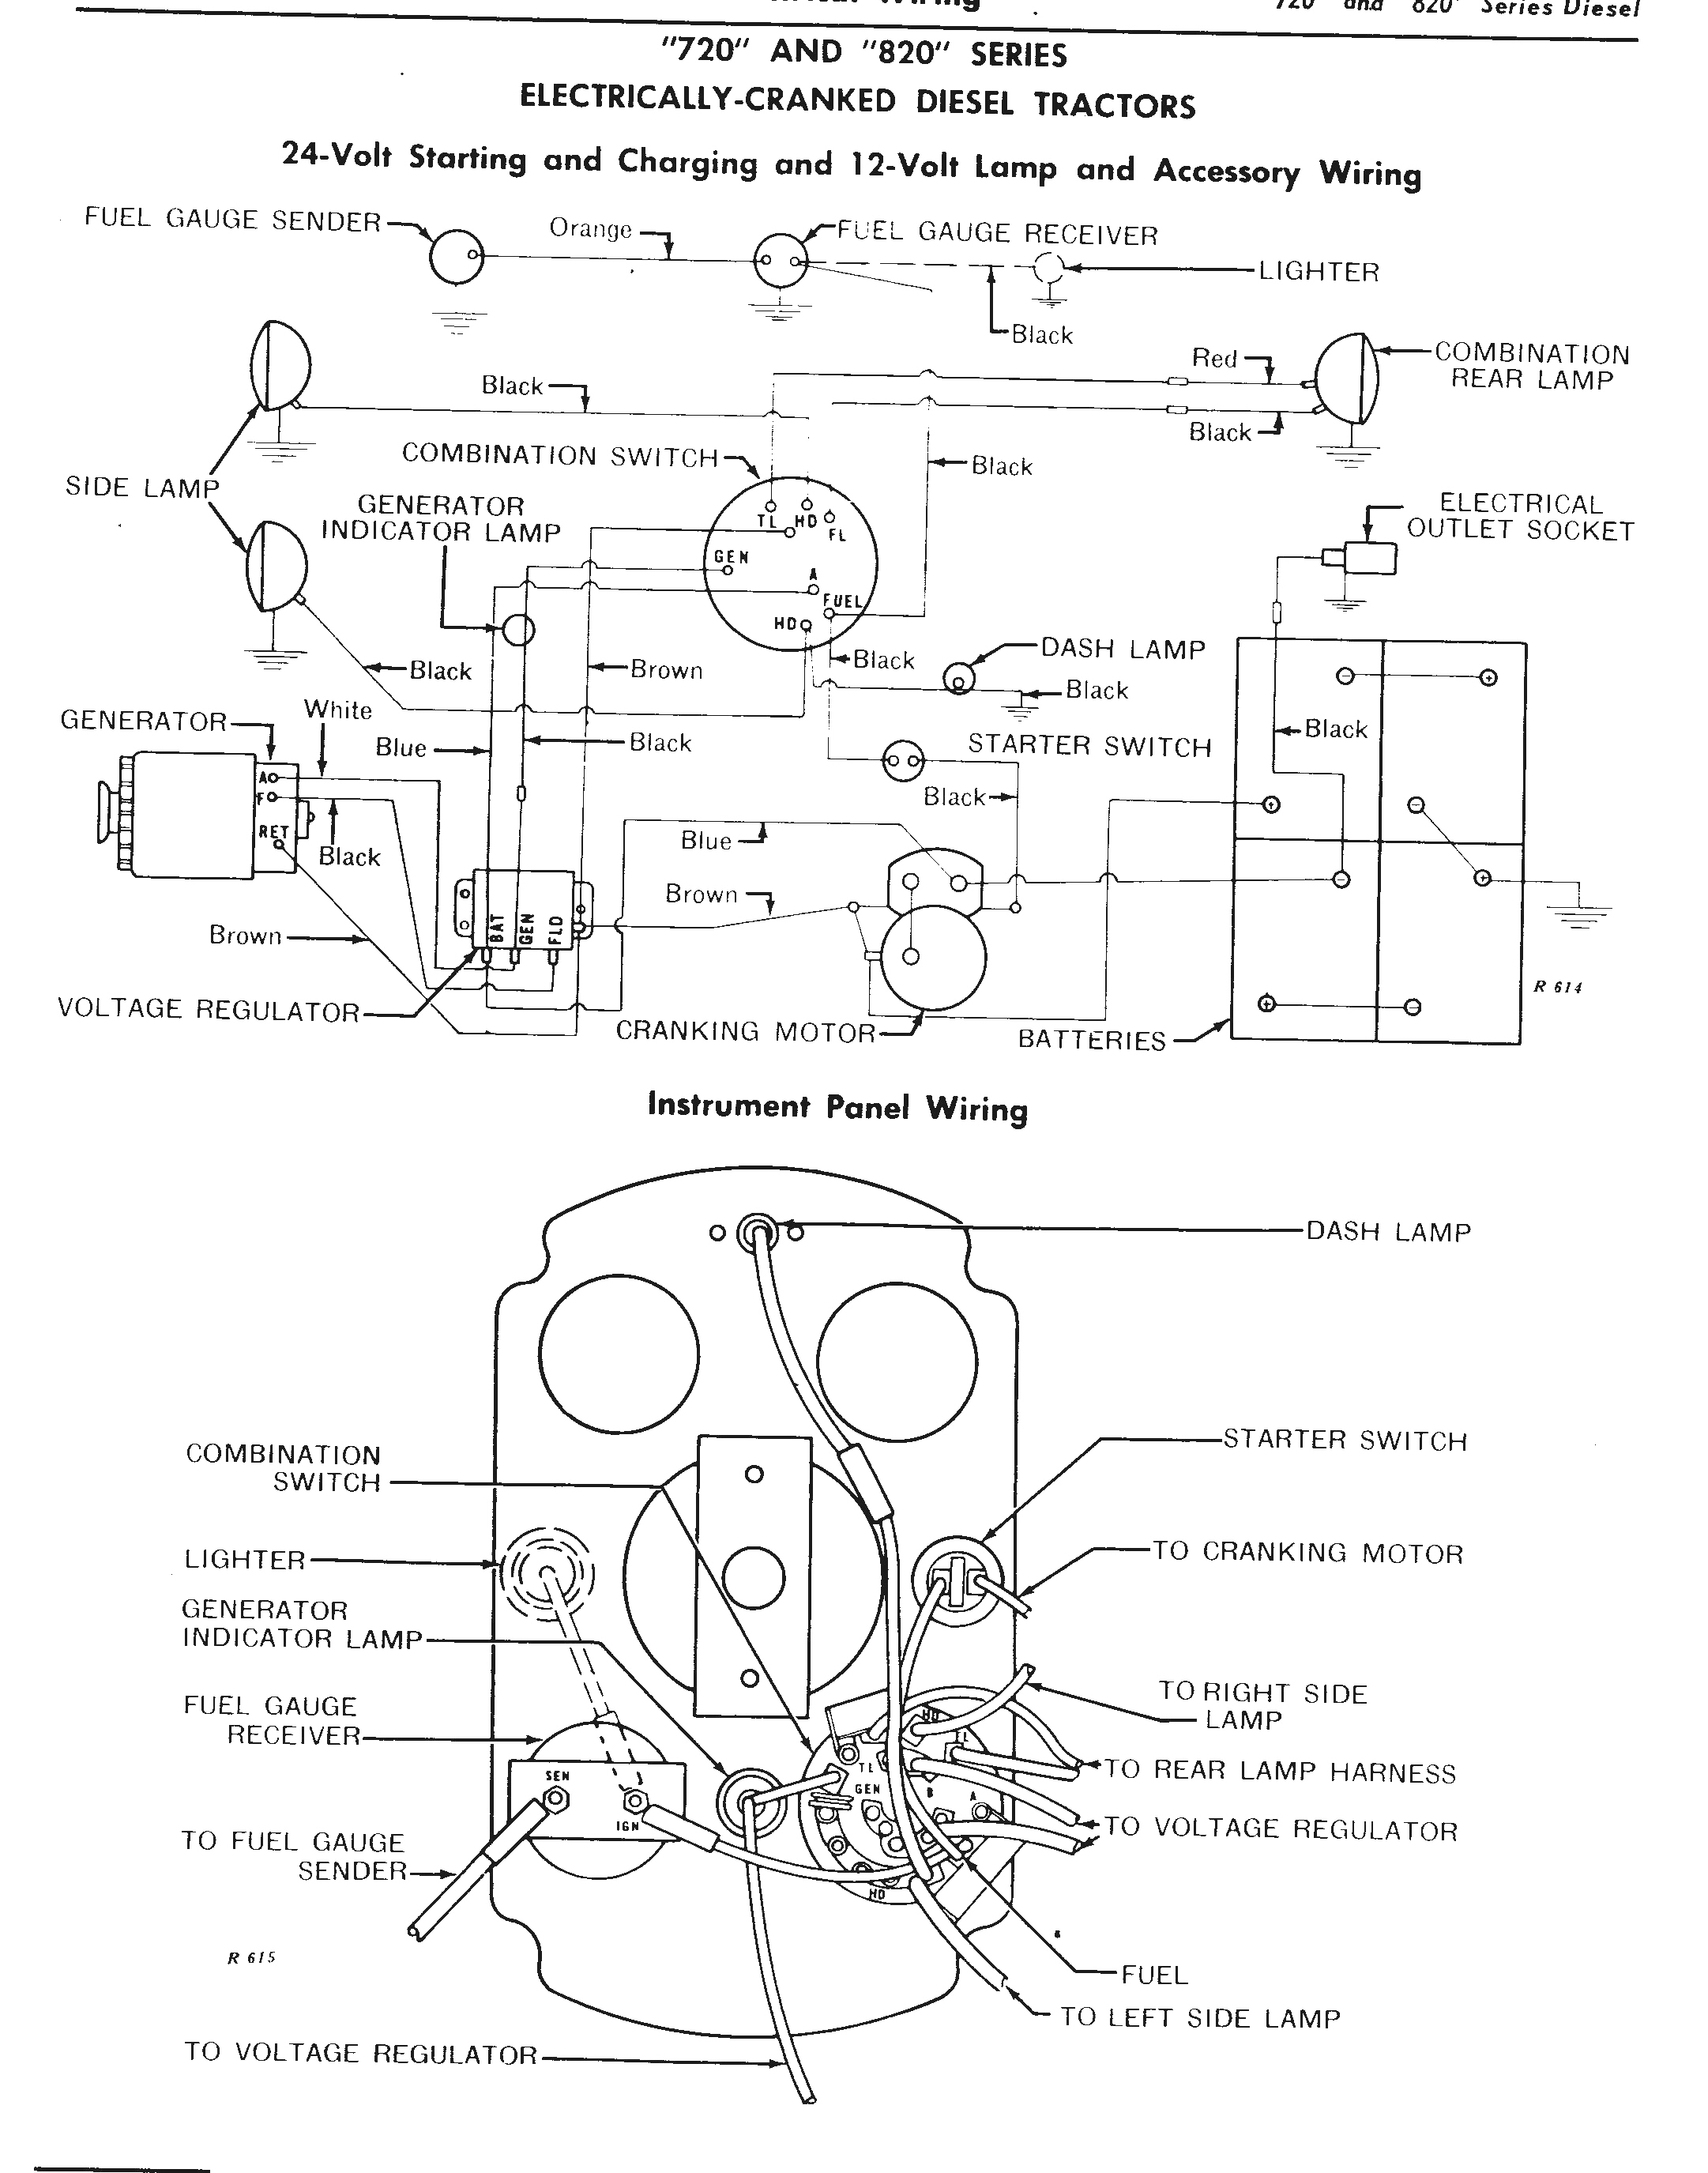 The John Deere 24 Volt Electrical System Explained 7 Pin Plug Wiring Diagram Free Download